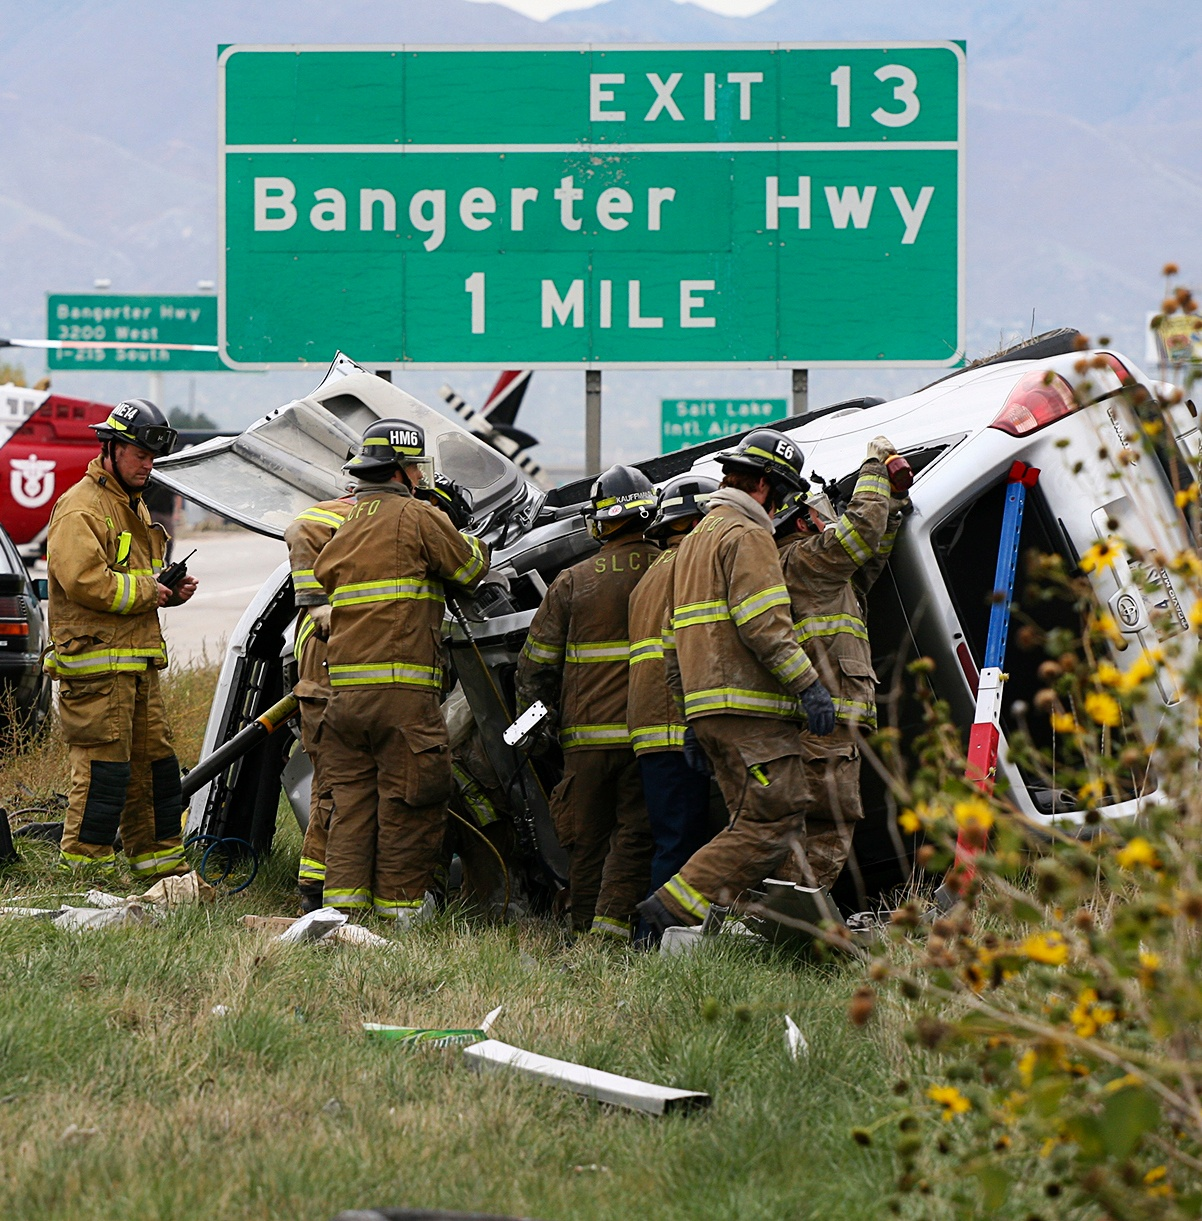 Troy Hagen_Incident Management_Traffic Accident.jpg